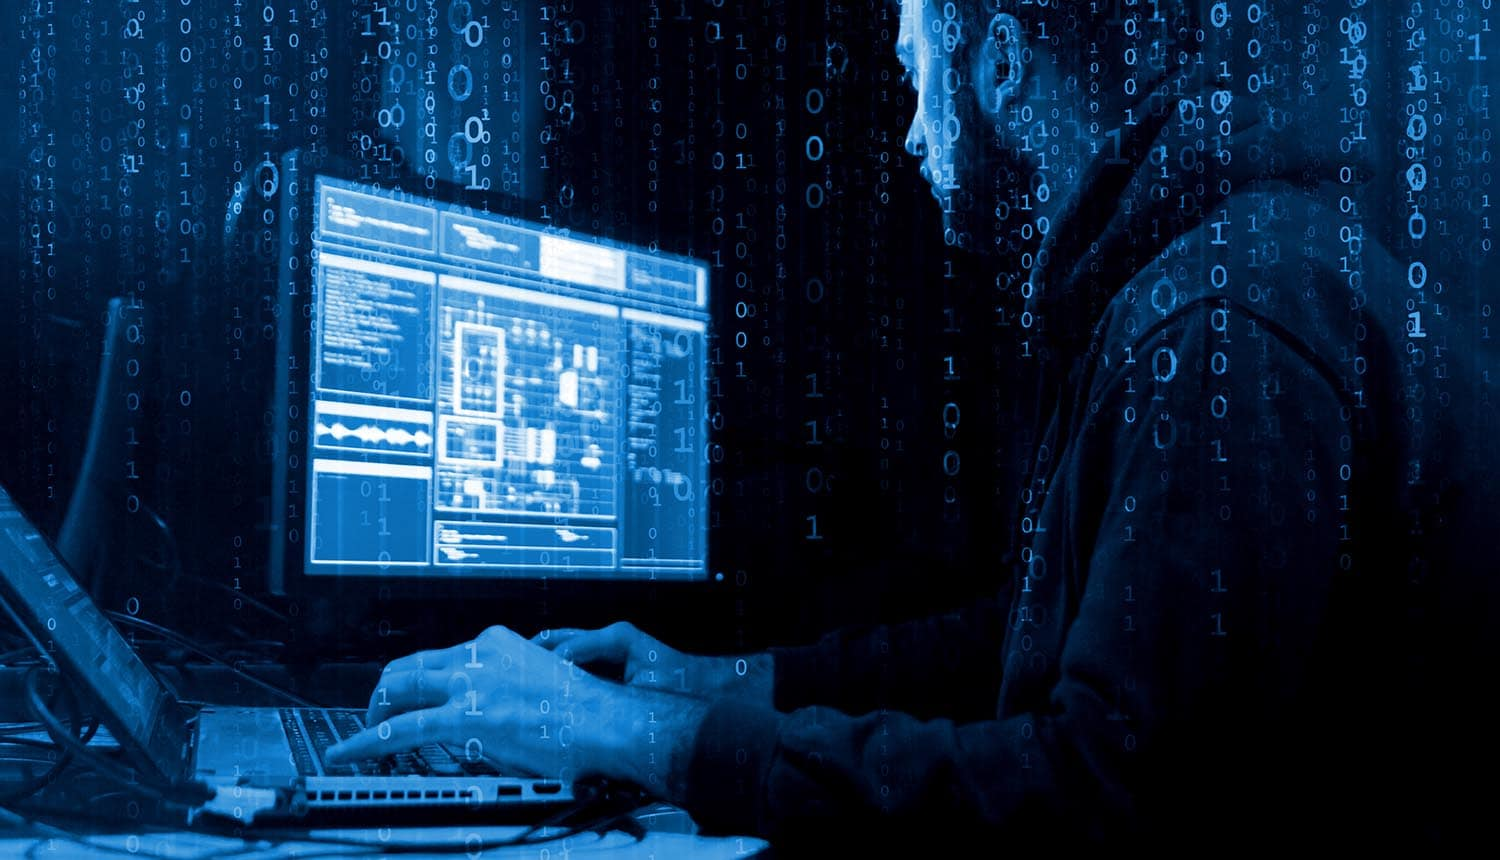 Hackers breaking server using computer showing cyber attacks on critical infrastructure